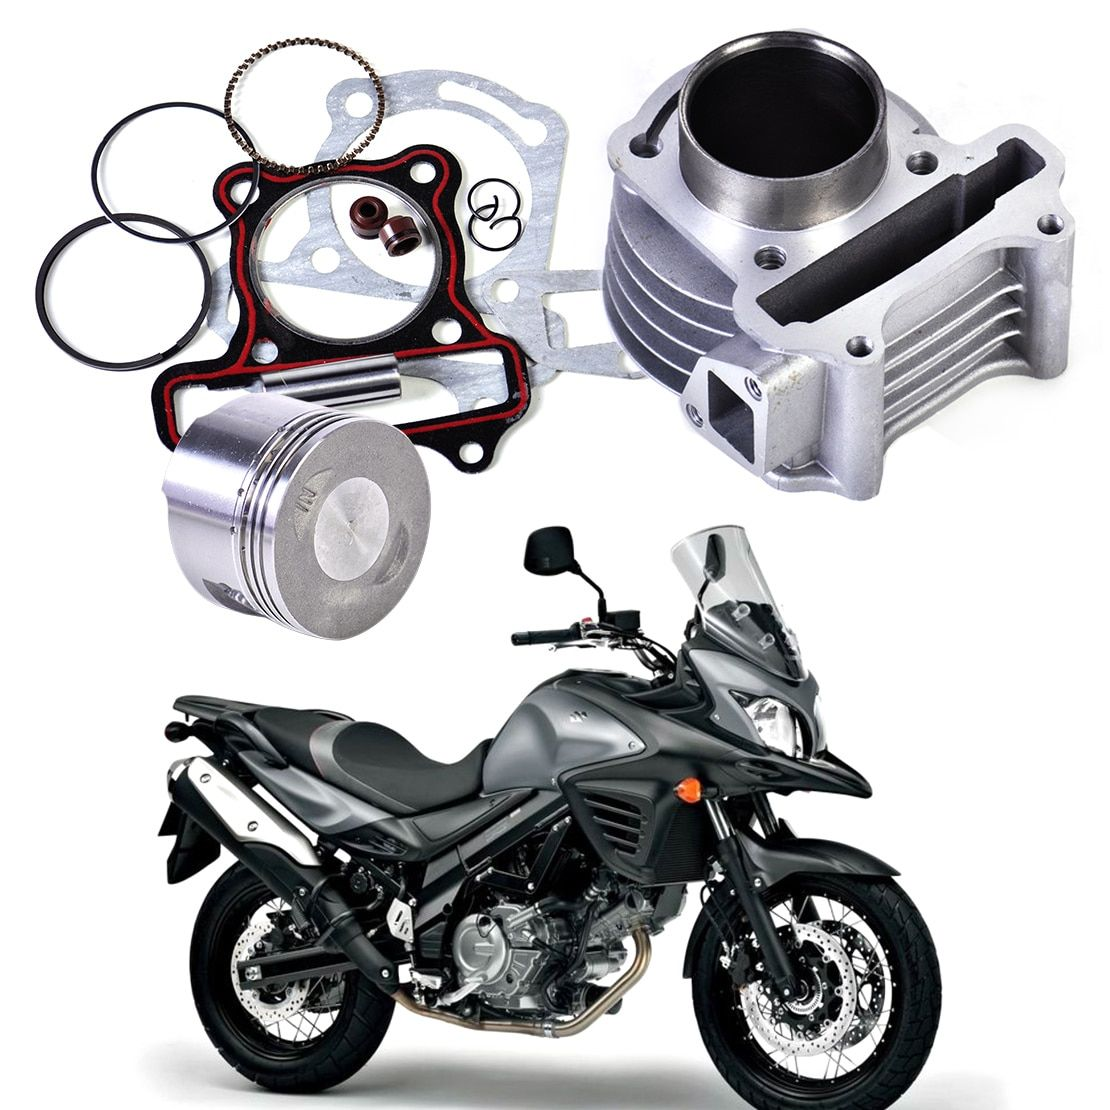 DWCX New 47mm Big Bore Kit Cylinder Piston Rings fit for GY6 50cc to 80cc 4 Stroke Scooter Moped ATV with 139QMB 139QMA engine